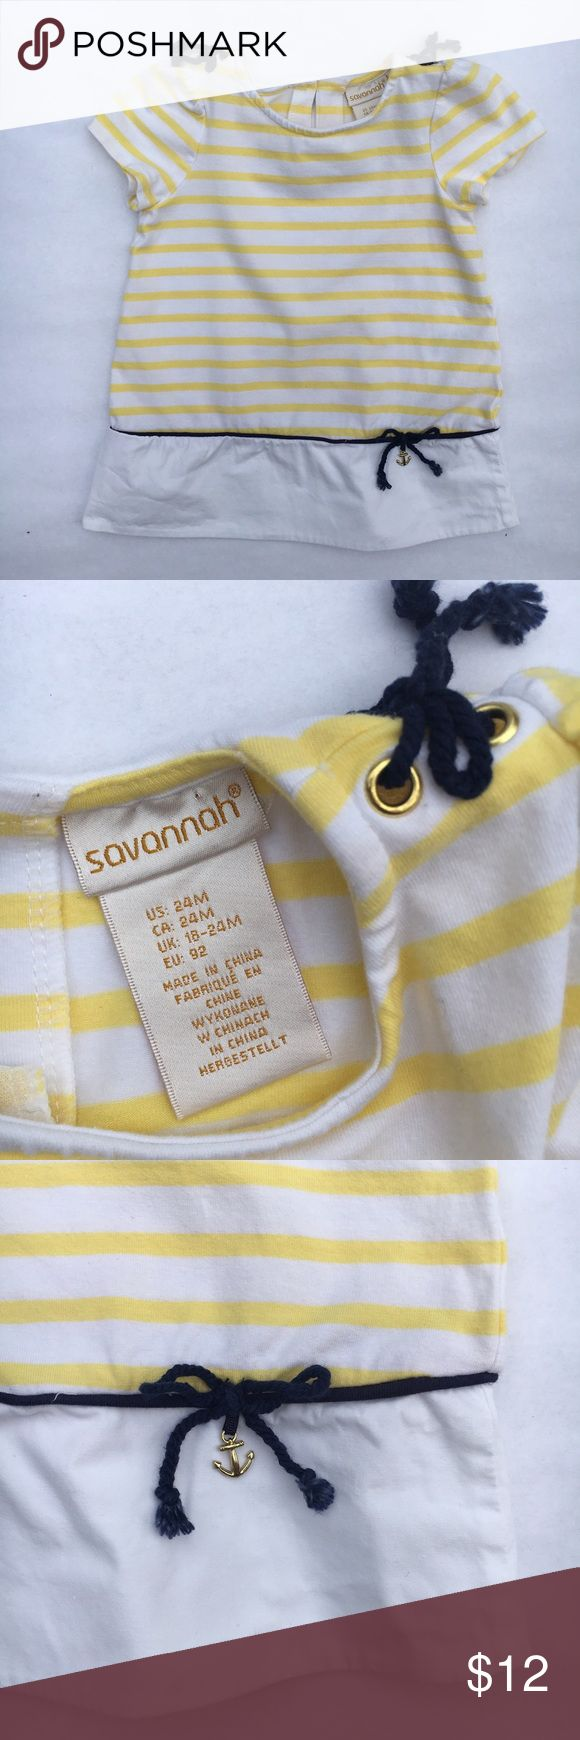 Savannah nautical summer dress Classical Savannah nautical summer dress in yellow and white with navy trim EUC. Minimal signs of wear; no marks, rips, or stains Drop waist with navy bow and anchor detail Navy bows at shoulders  95% cotton, 5% spandex fabric Savannah Dresses